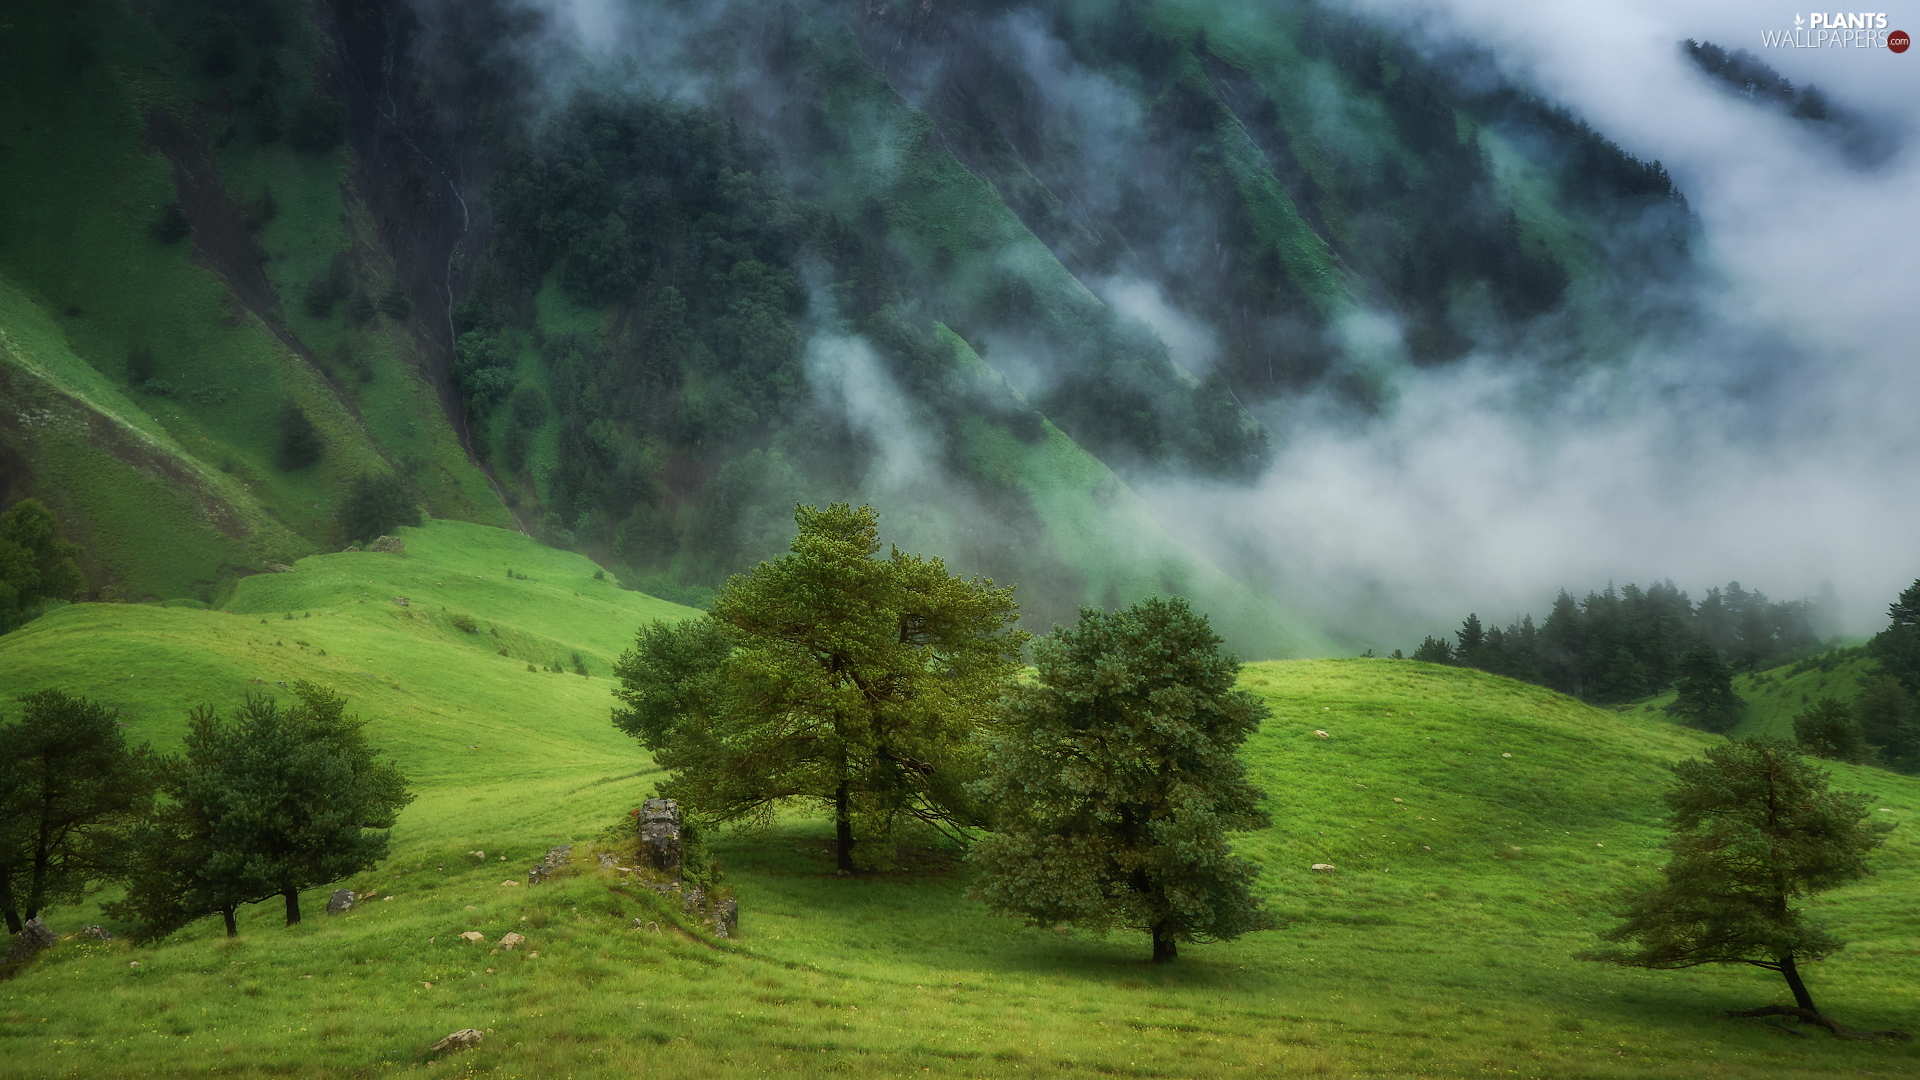 slope, Mountains, trees, viewes, Fog, forested